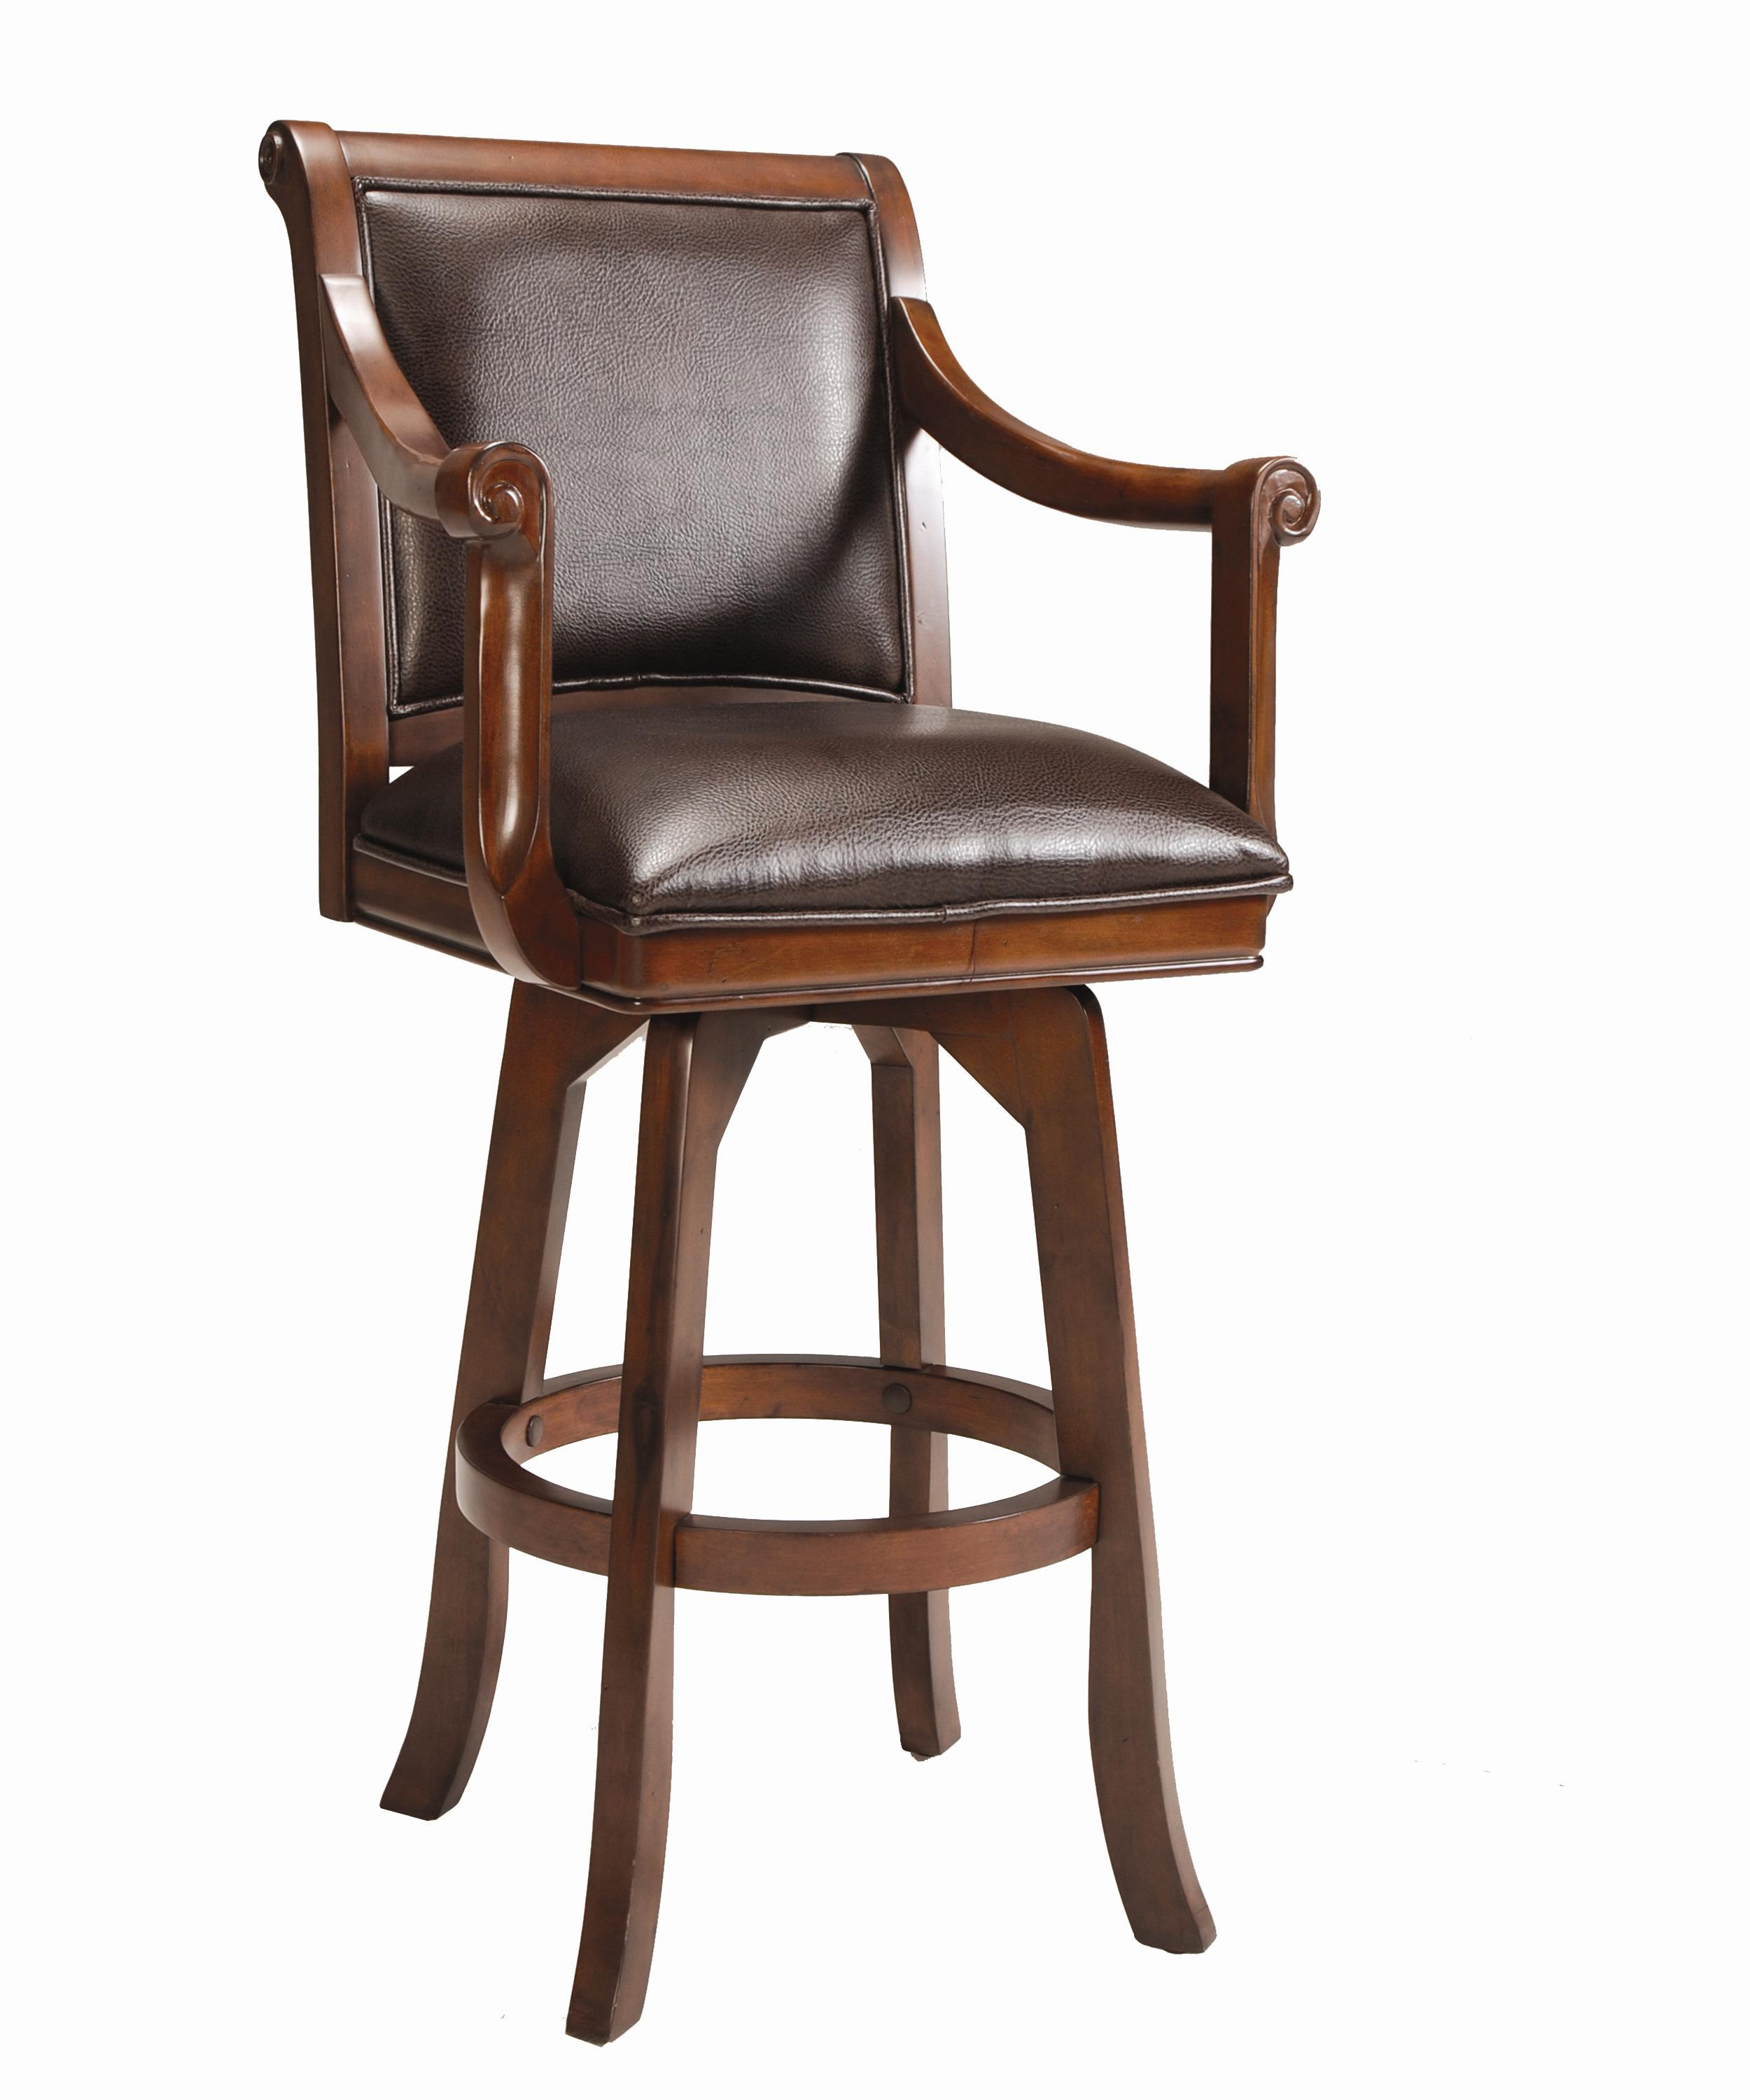 Hillsdale Game Stools & Chairs Palm Springs Swivel Bar Stool - Item Number: 4185-830